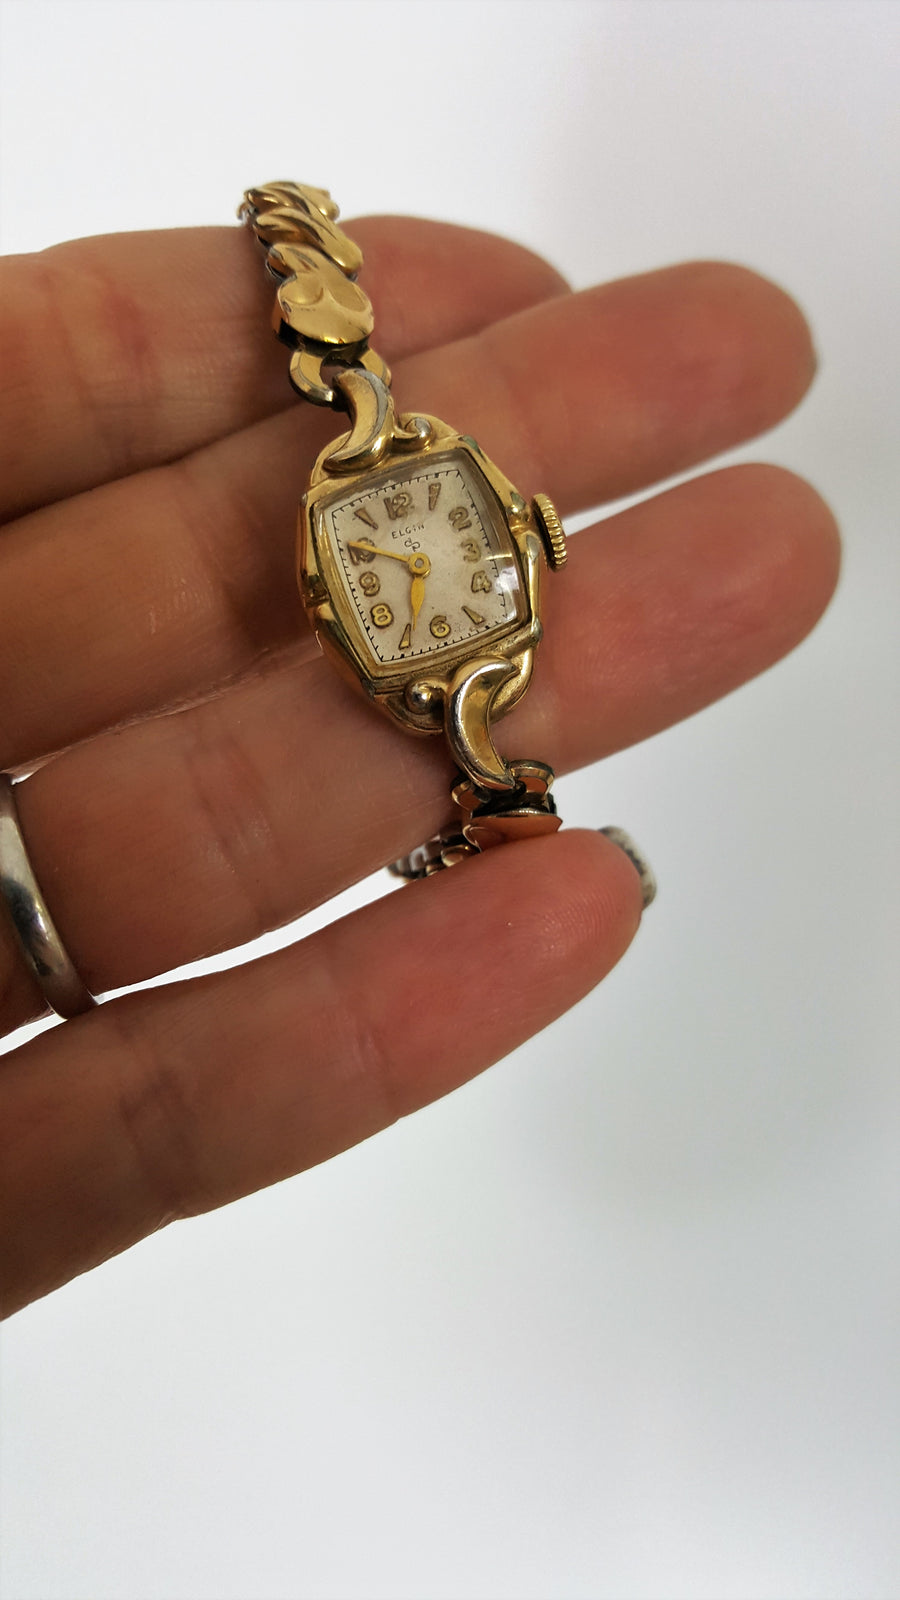 Vintage 1940s Ladies Elgin Watch, Working